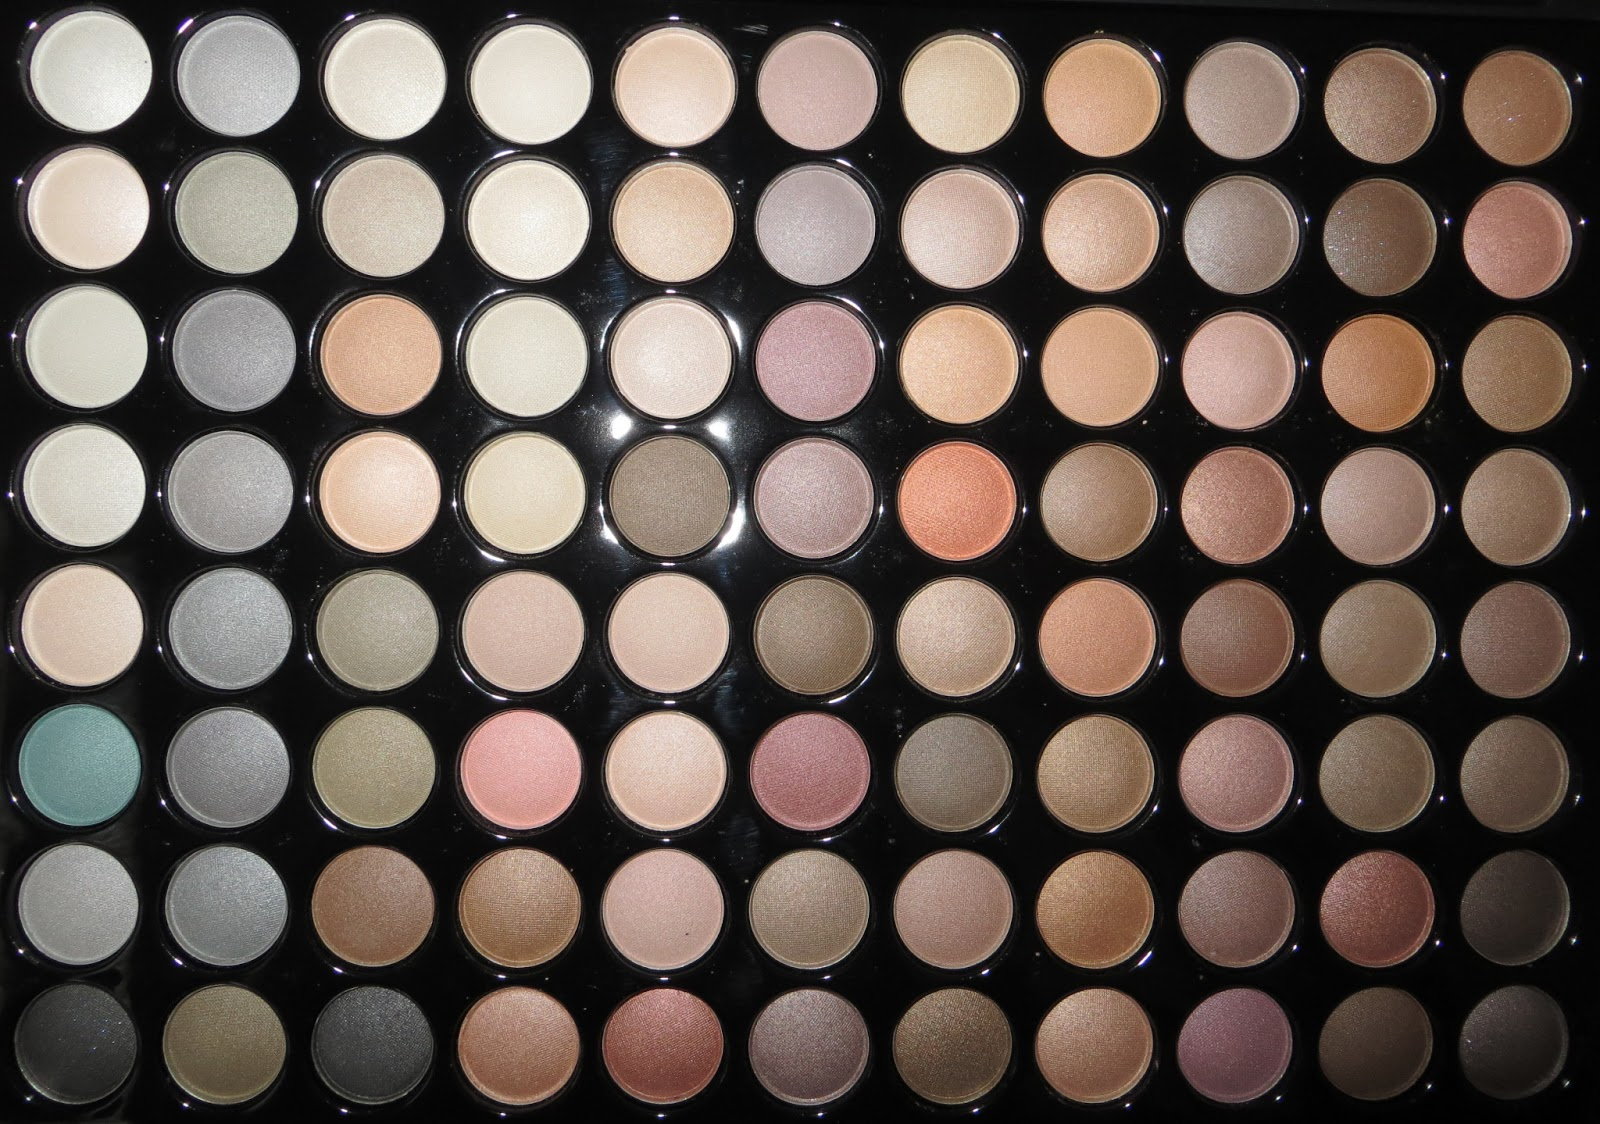 Oh What Fun! Cheap EBay Find Pro 88 Warm Eyeshadow Palette